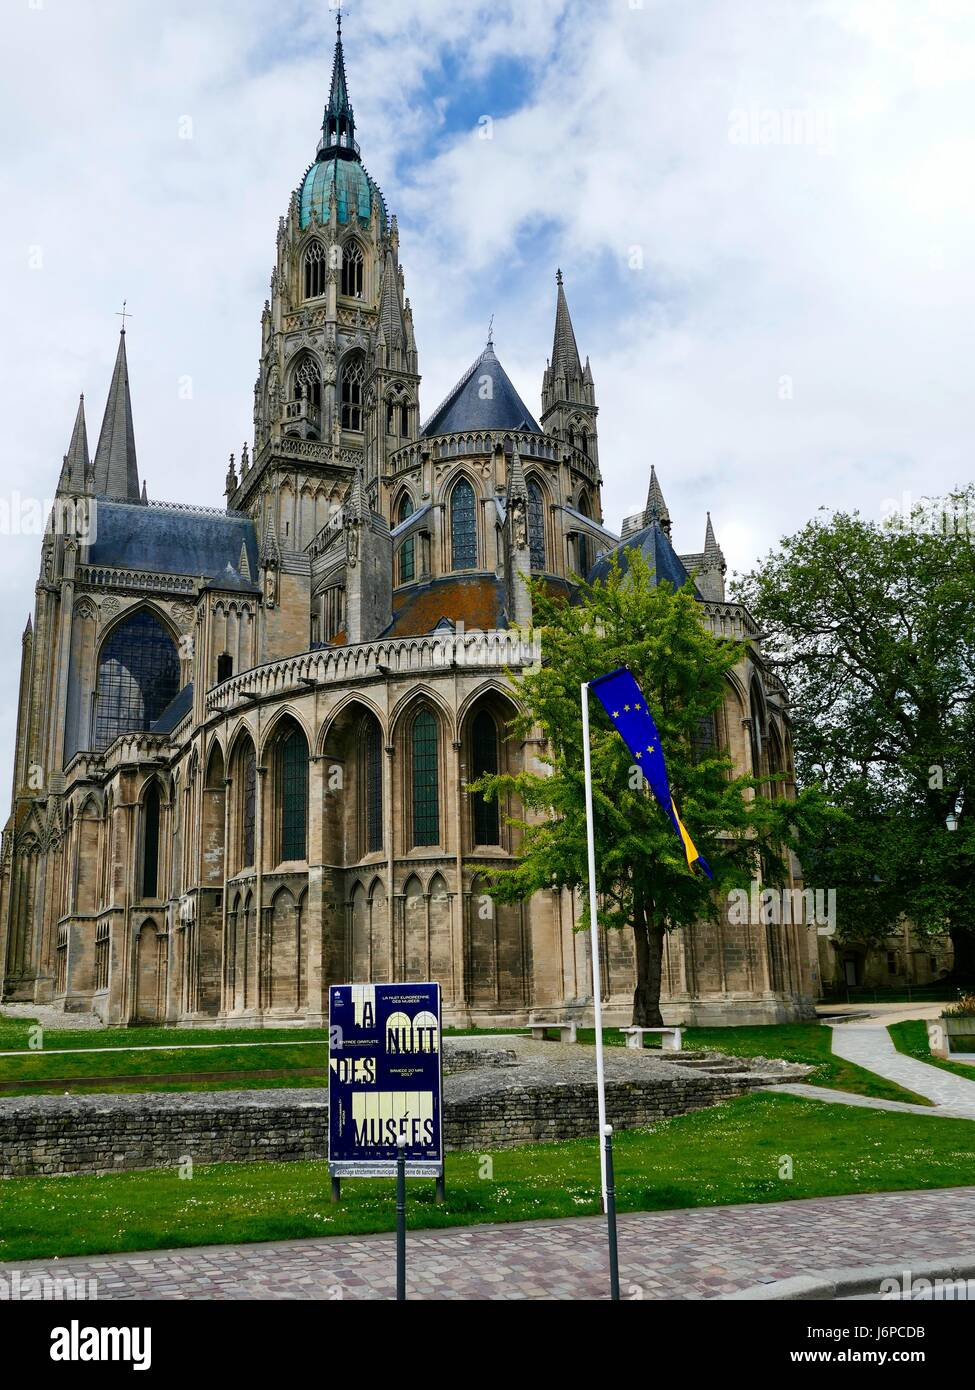 Bayeux Cathedral, Cathédrale Notre-Dame de Bayeux, with sign for La Nuit de Musées, Museum Night, in foreground, - Stock Image